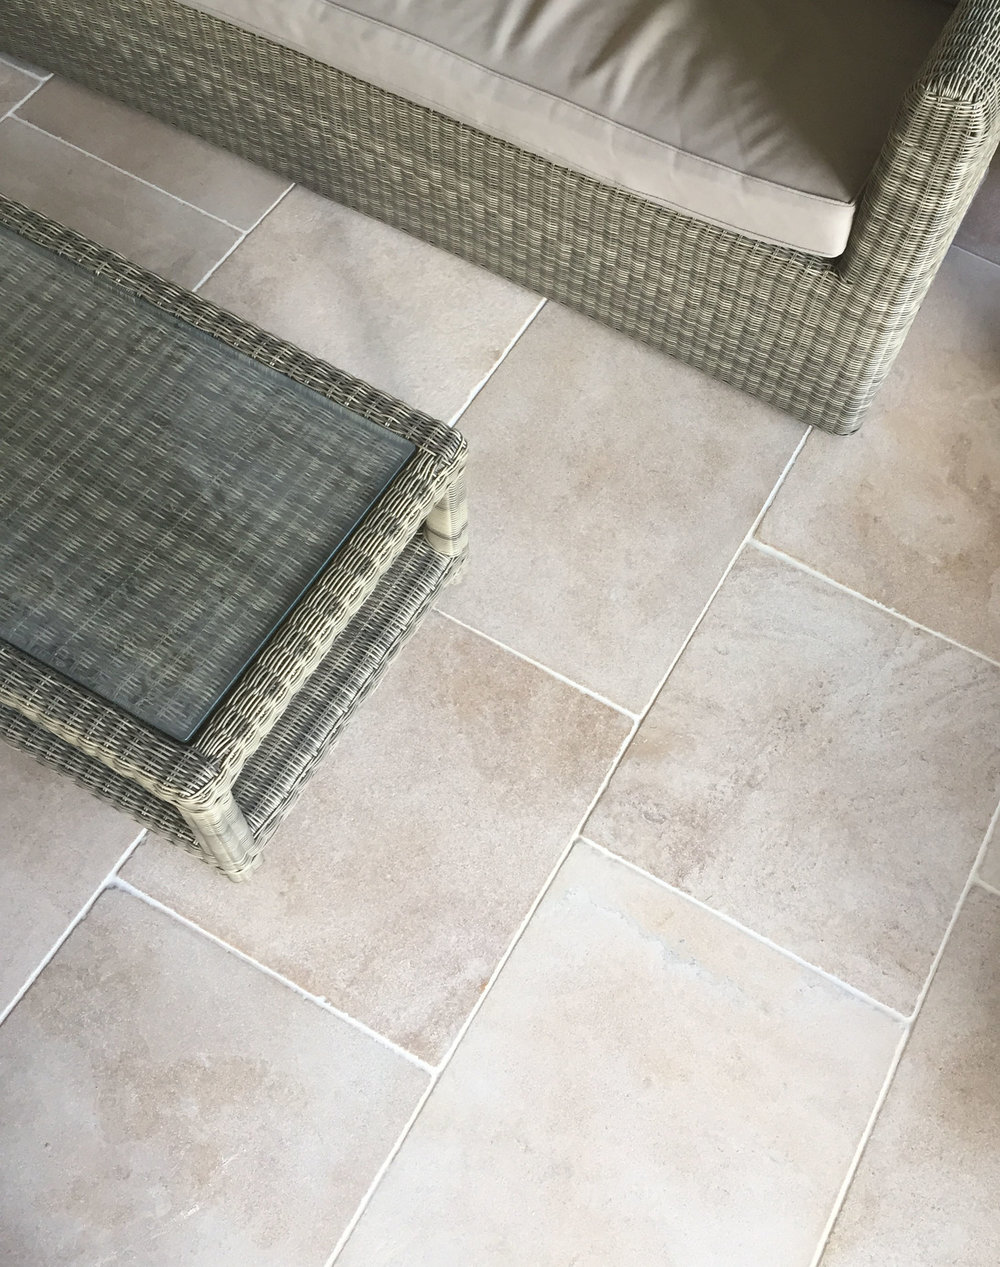 Style blog blog rock and wood cotswold cream limestone the cotswold cream limestone is a one of our favourite stones its a very popular natural stone for the cotswolds with its sandy solutioingenieria Images